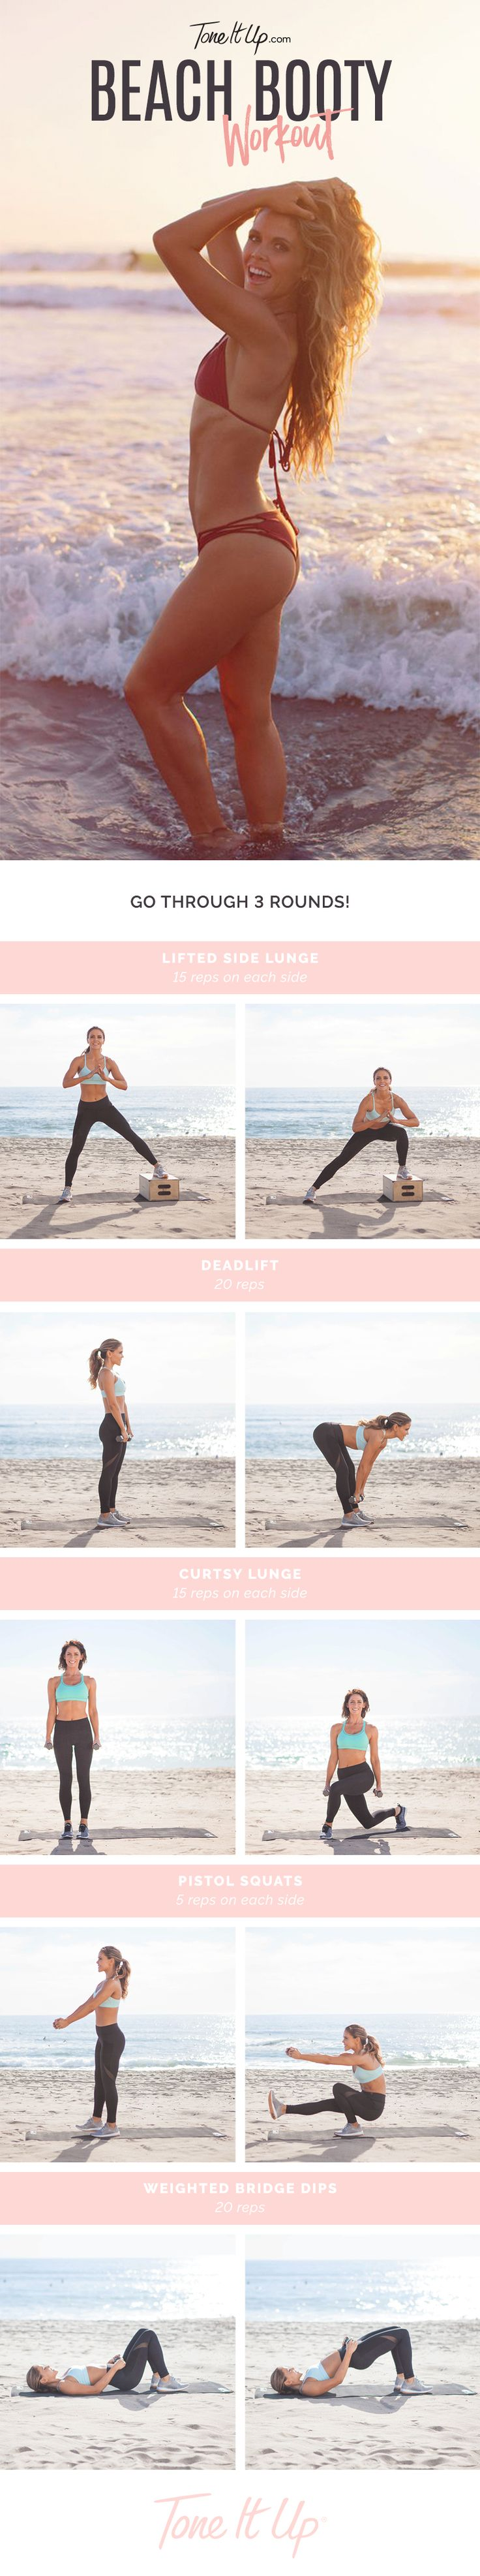 Beach Booty!! The 10-Minute Lower Body Workout We'll Be Doing All Summer